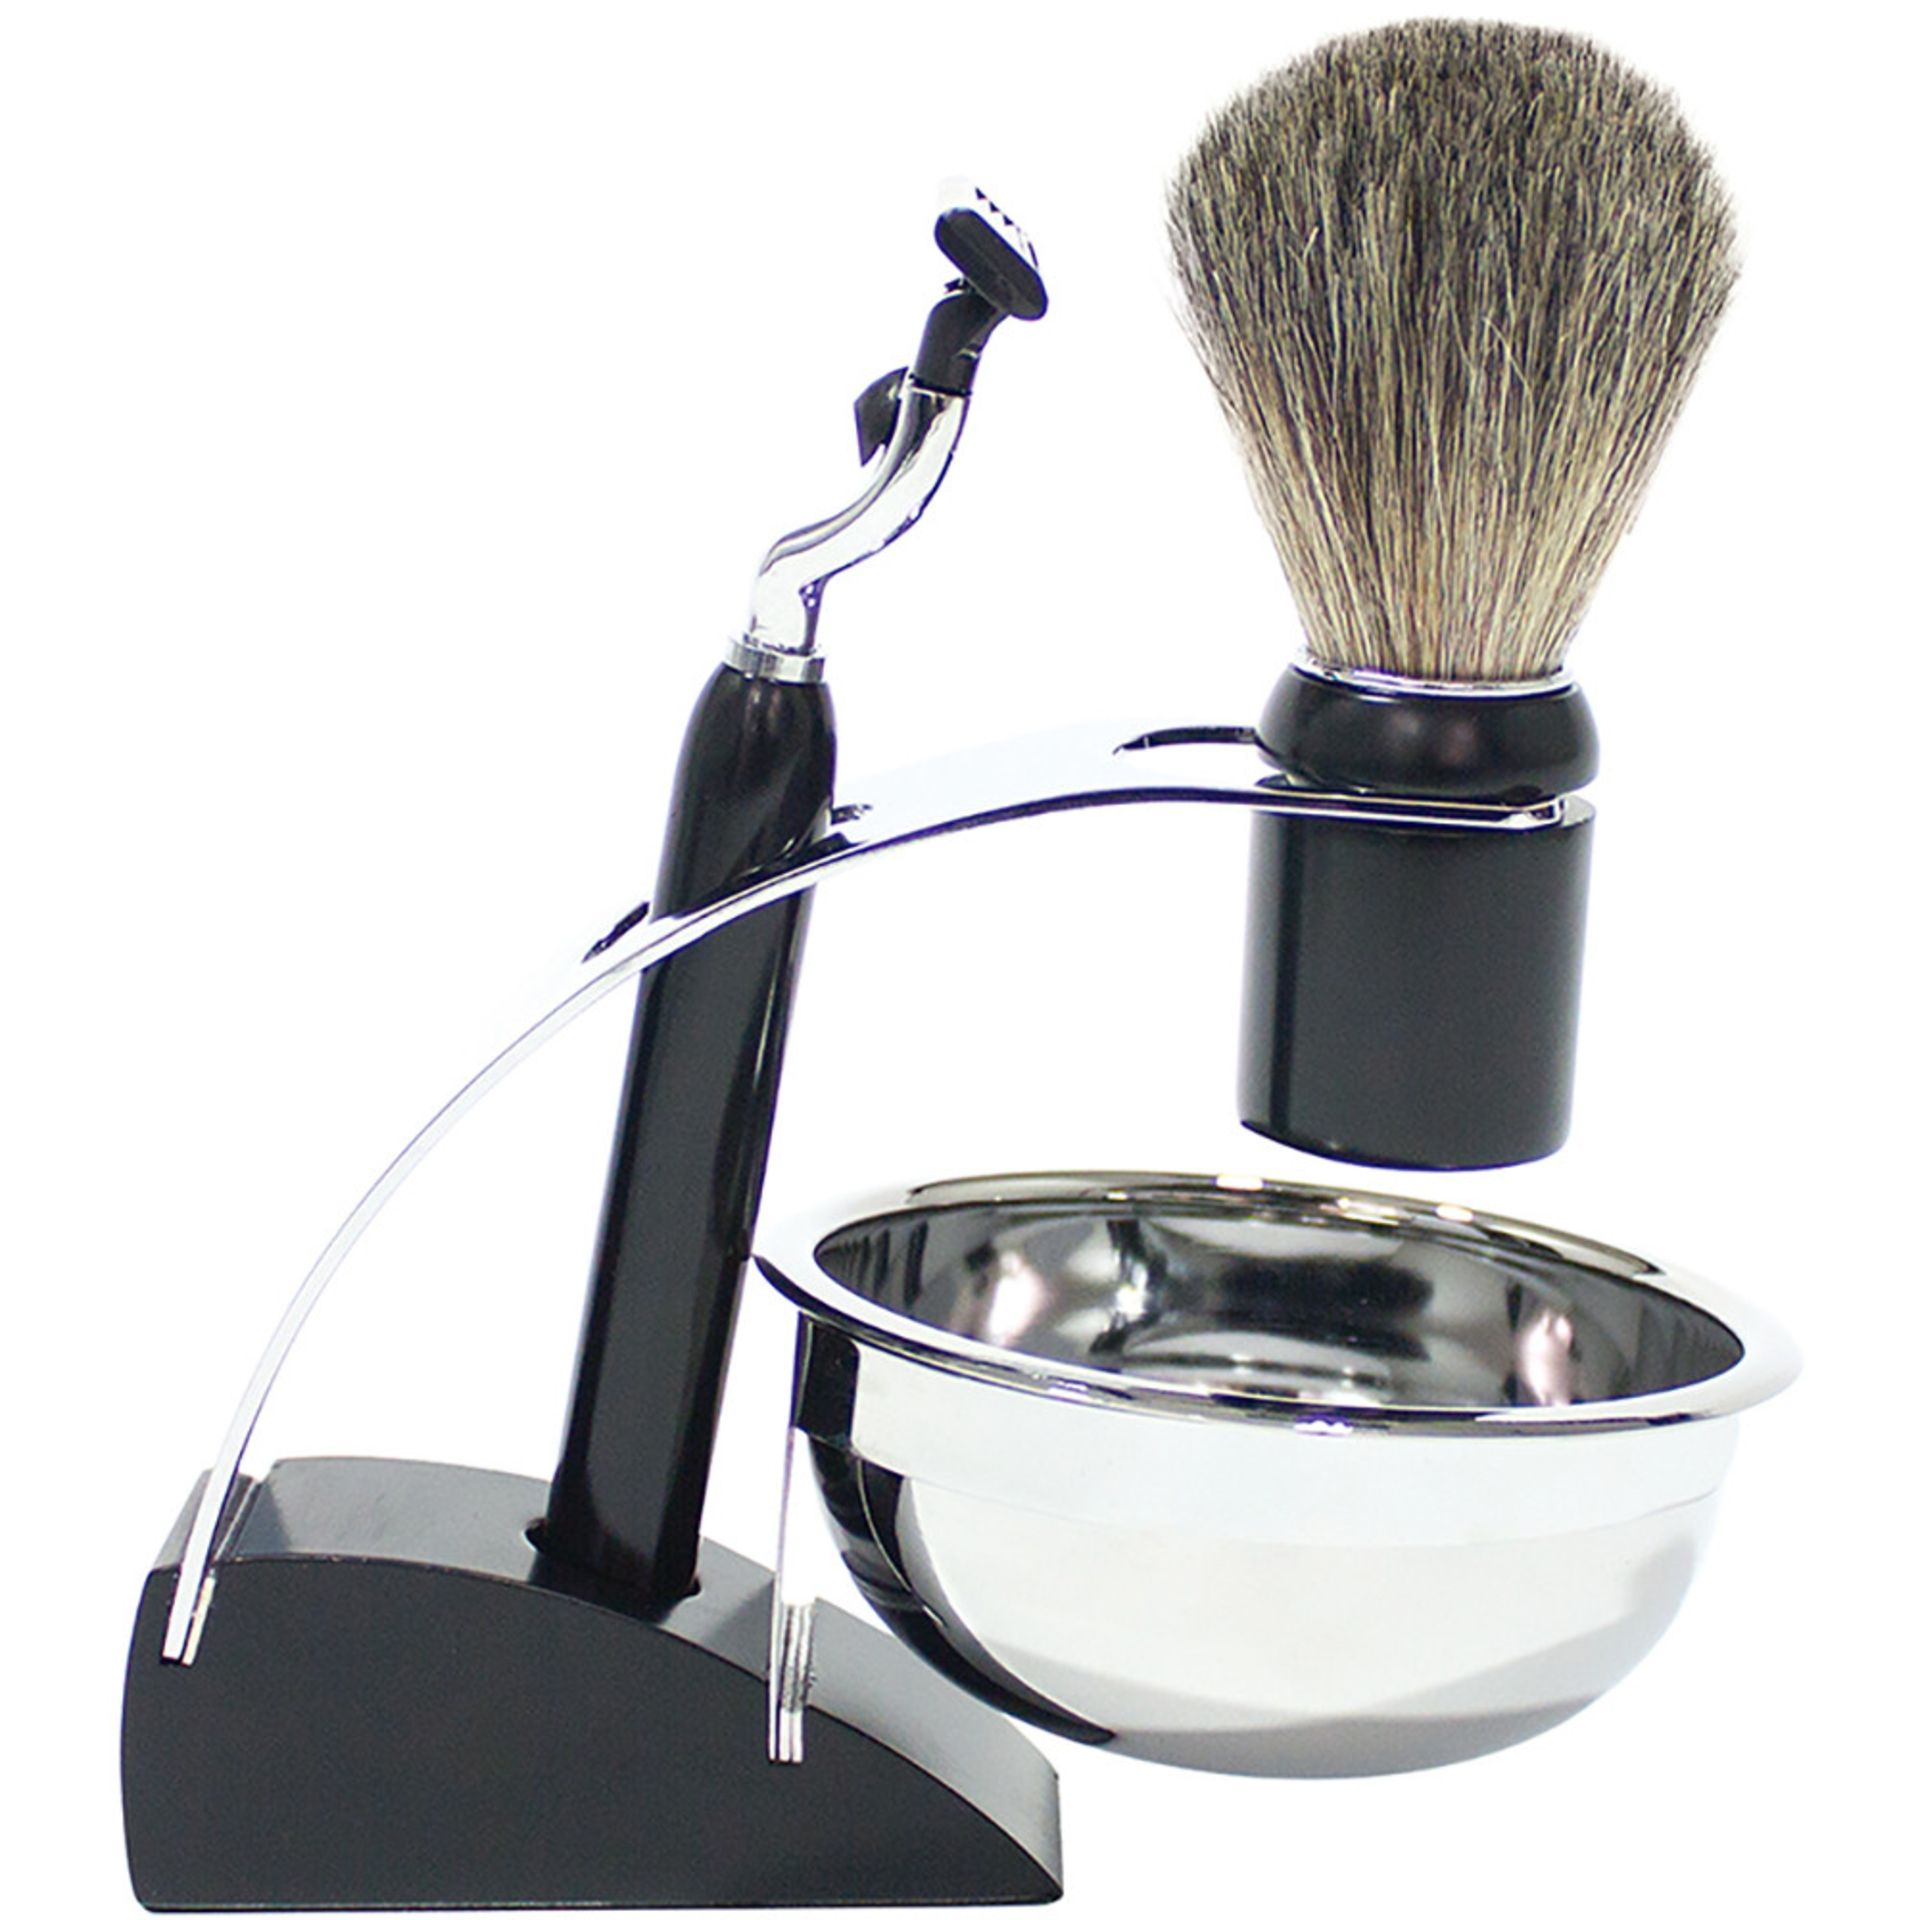 Lot 10034 - V Brand New Retro Shaving Set Includes Soft Hair Brush - Shaving Bowl - Razor With Removeable Heads